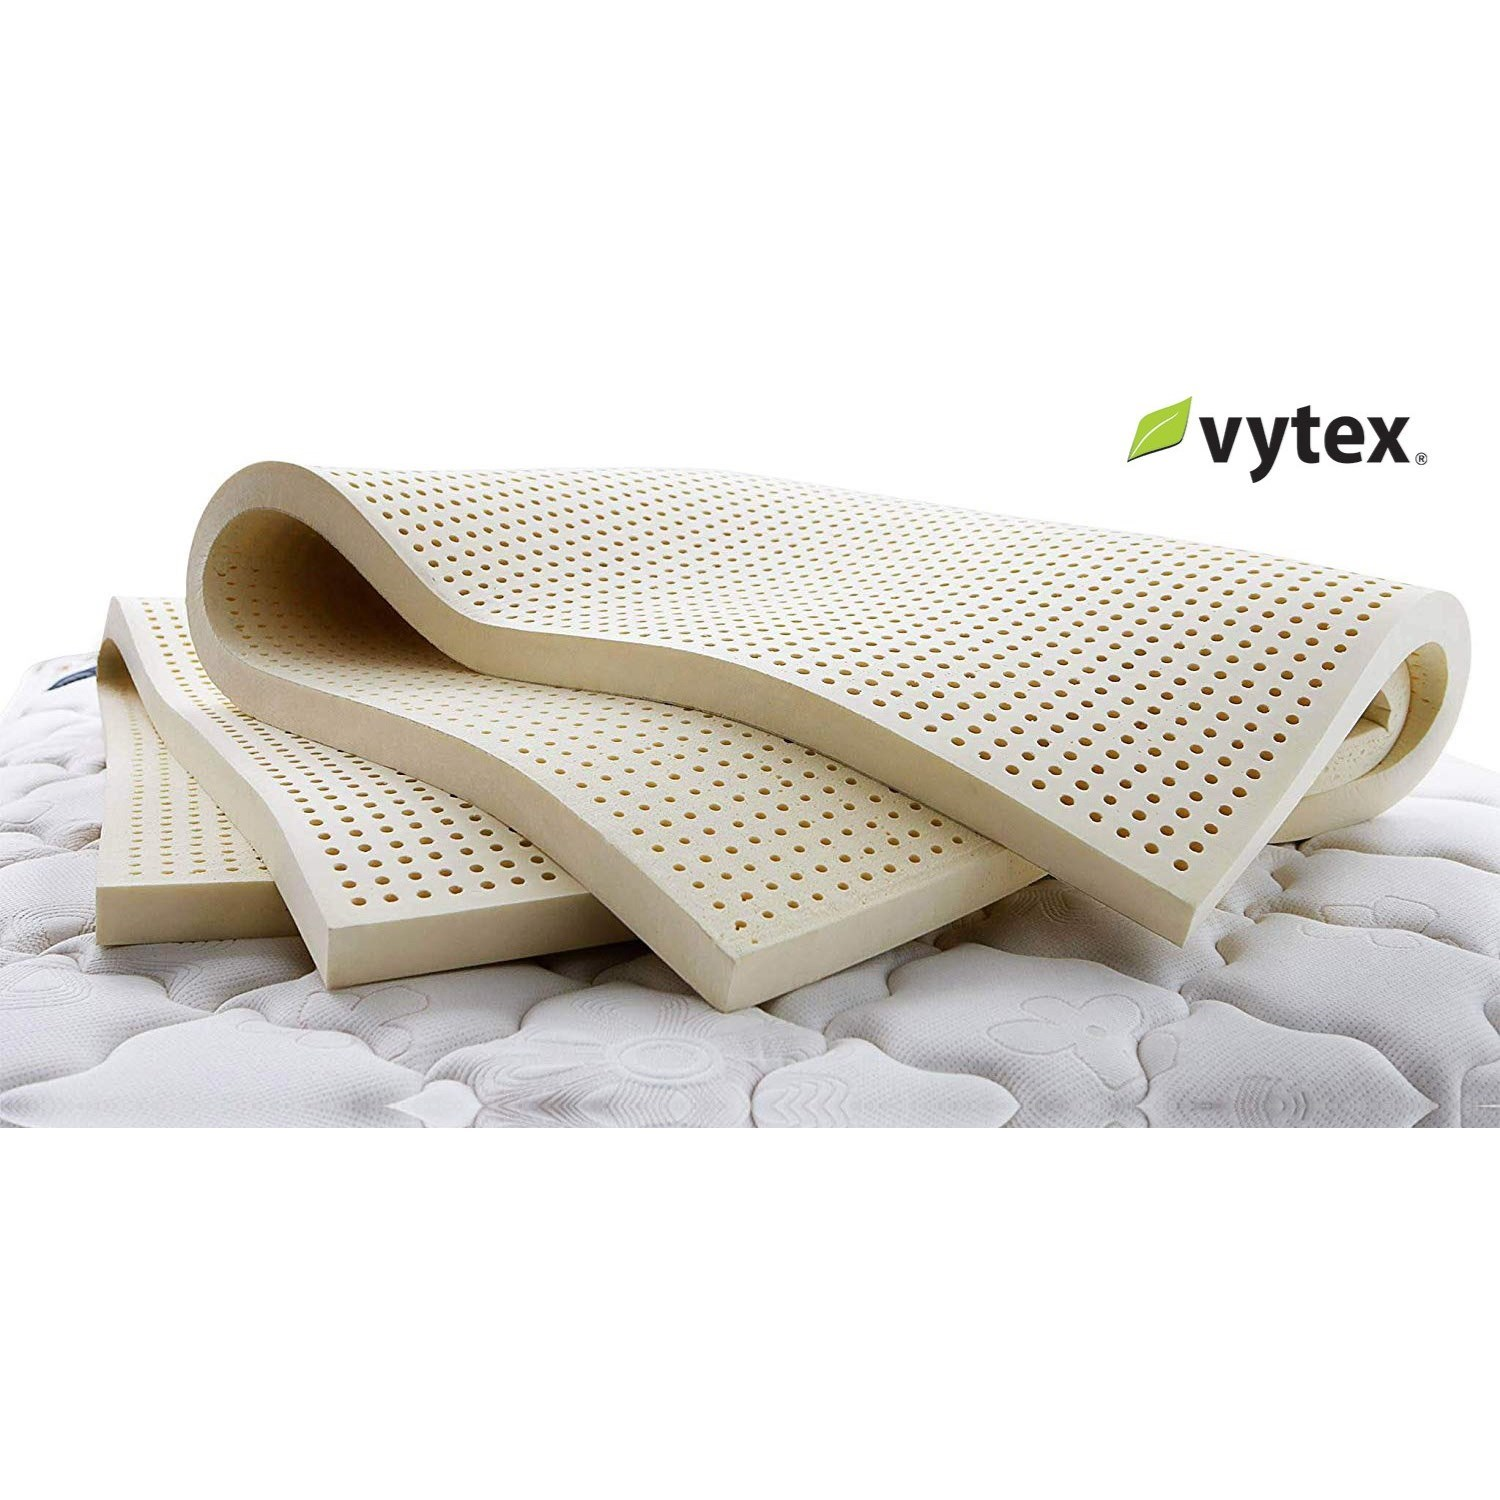 "Vytex Mattress Toppers - Firm Twin 1"" Firm Latex Mattress Topper by Vytex at Rotmans"